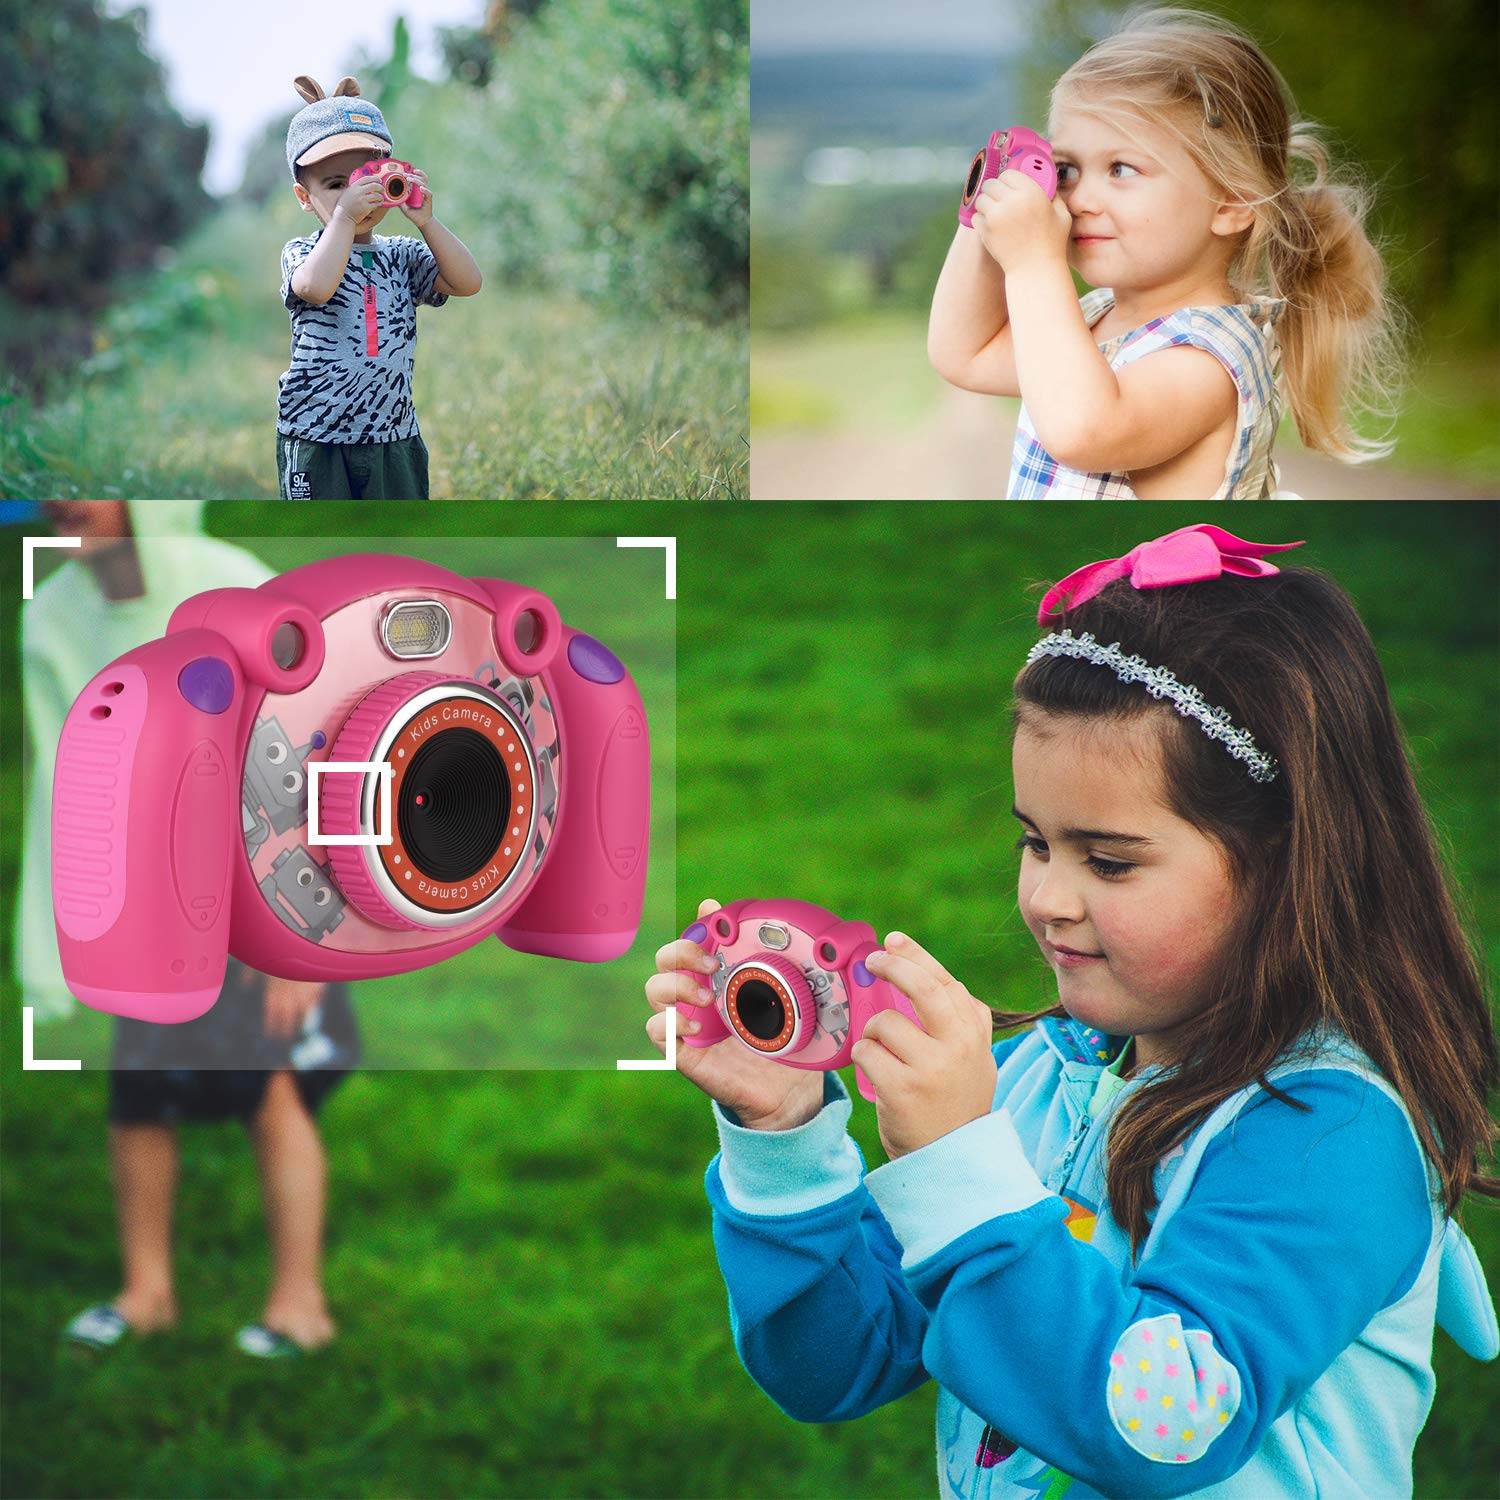 eyesen Kids Camera Digital Child Camcorder Shockproof Mini Camera with LED Flash Light and 2.0 Inch Sreen, Gifts for 4-8 Year Old Girls by eyesen (Image #5)